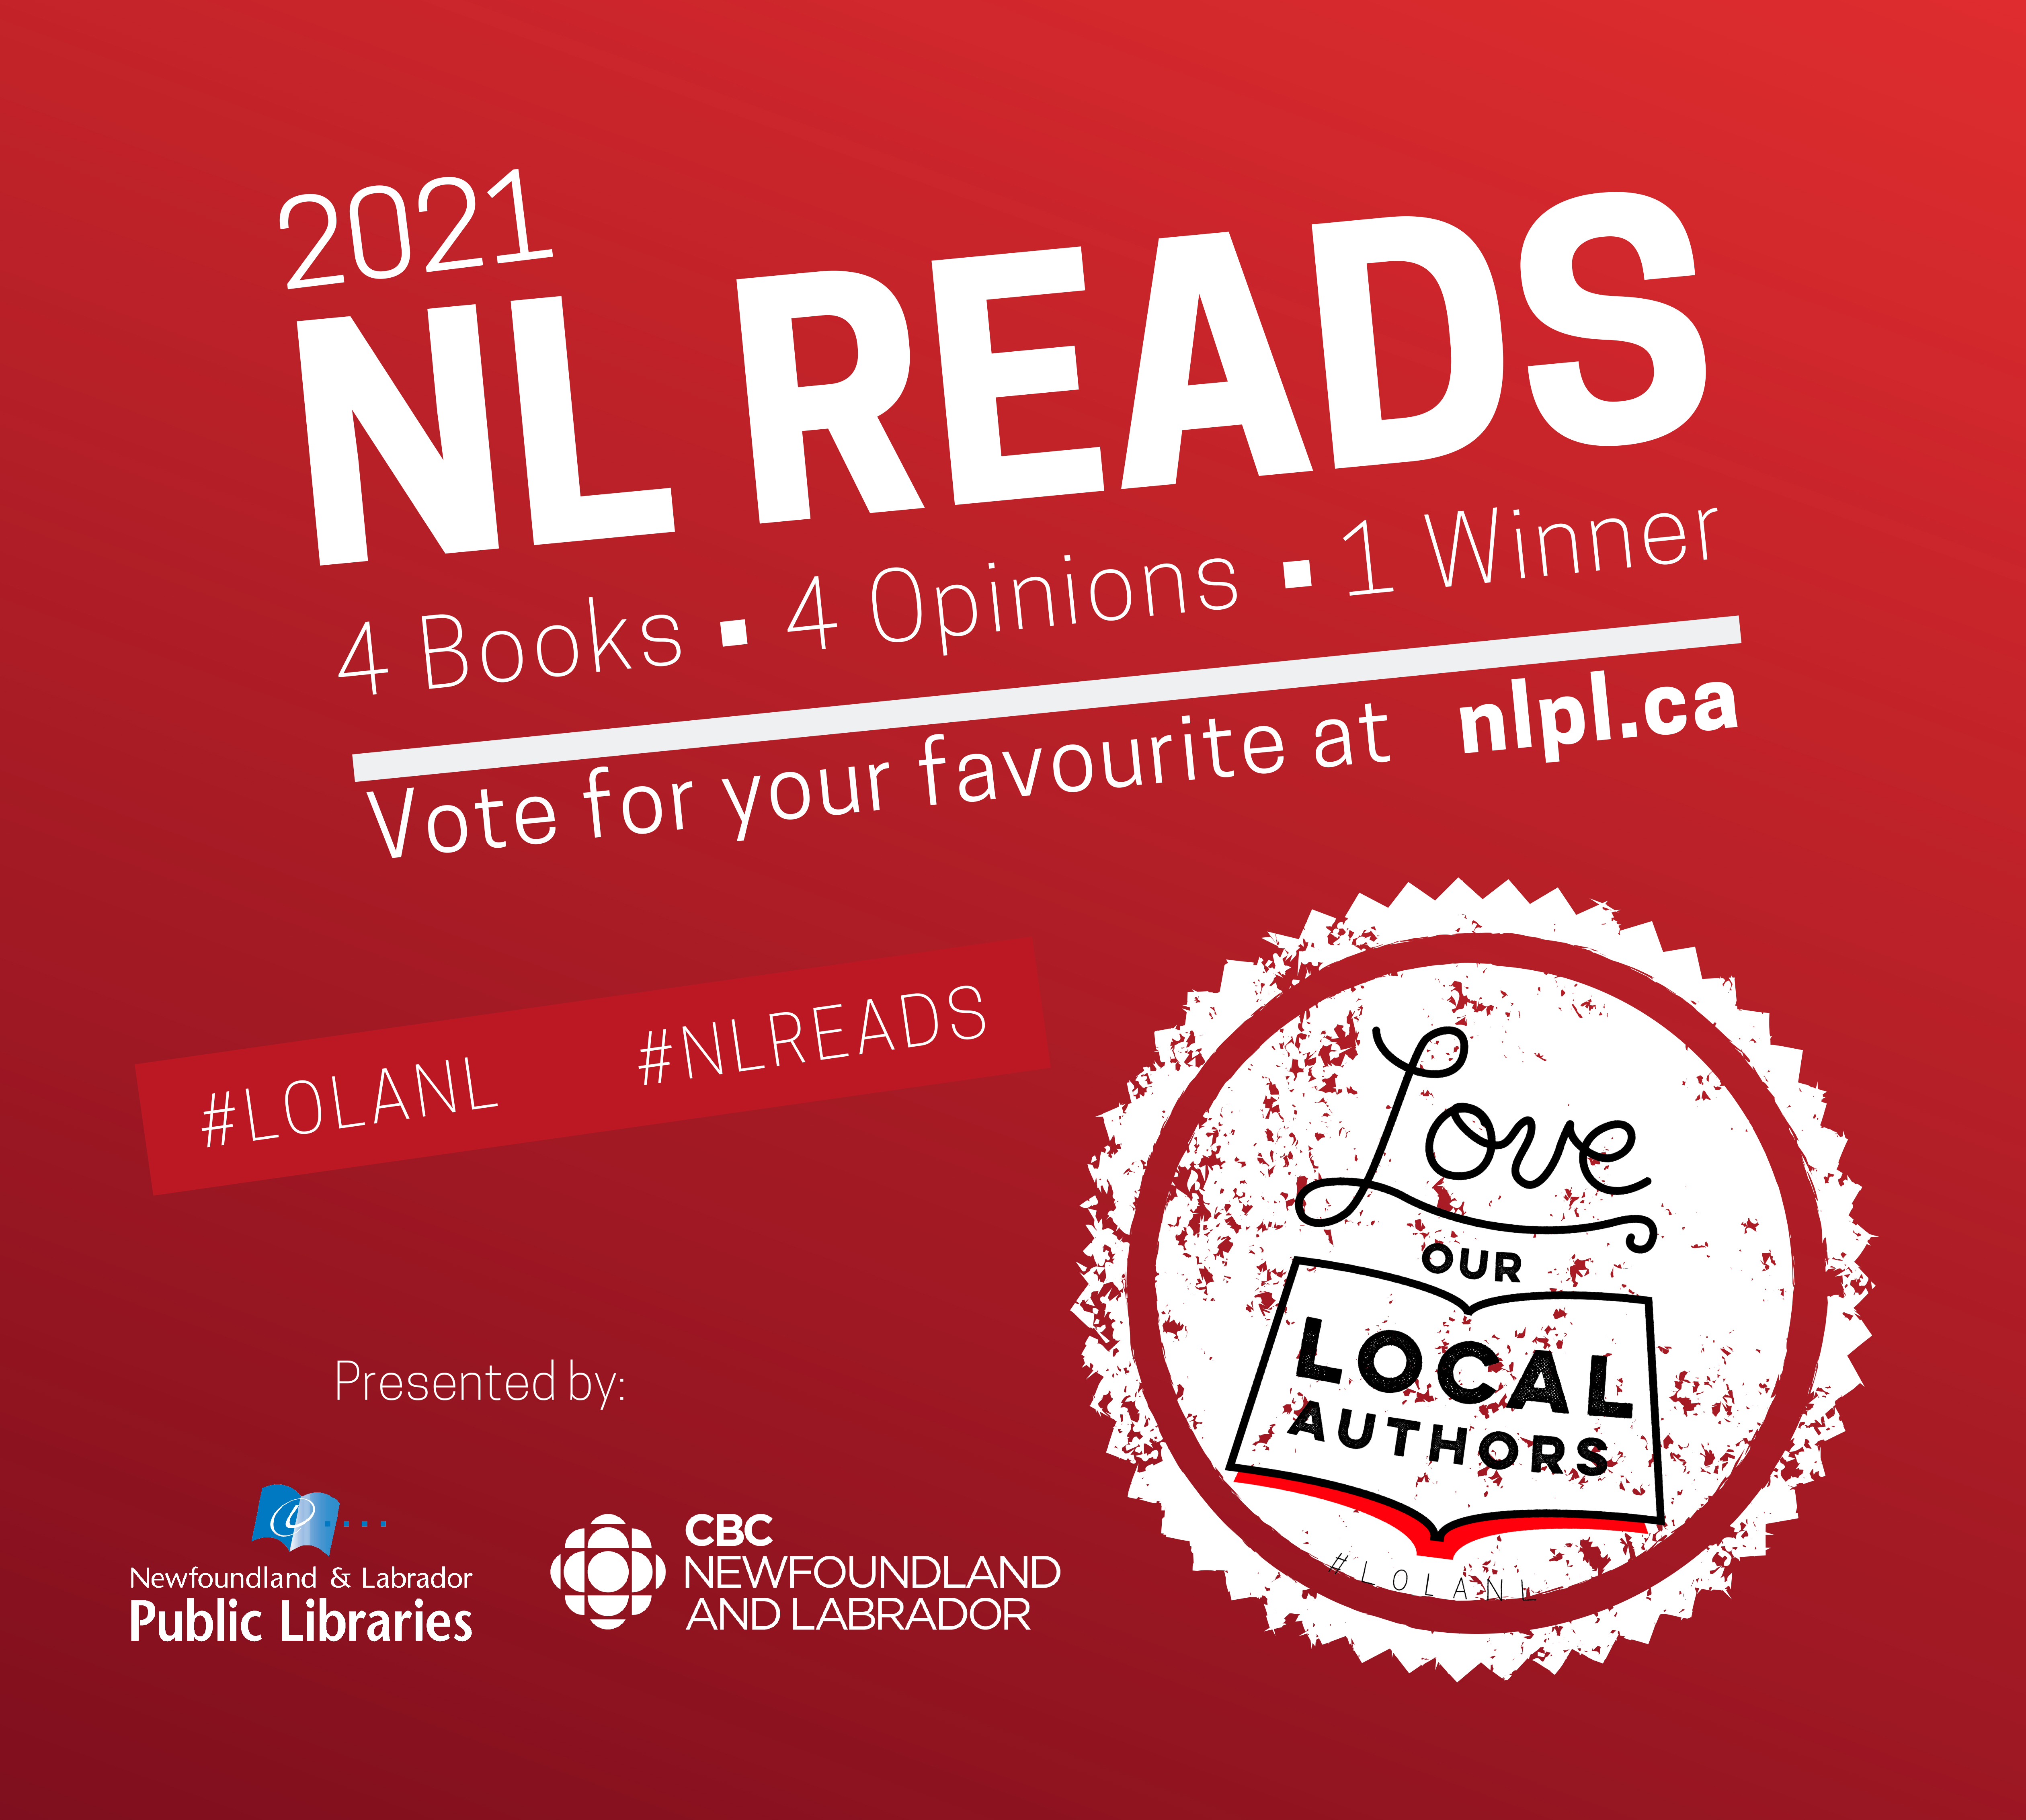 NL READS 2021. 4 books, 4 opinions, 1 winner.  Vote for your favorite at nlpl.ca.  Don't forget to use the hashtags #LOLANL and #NLREADS on social media.